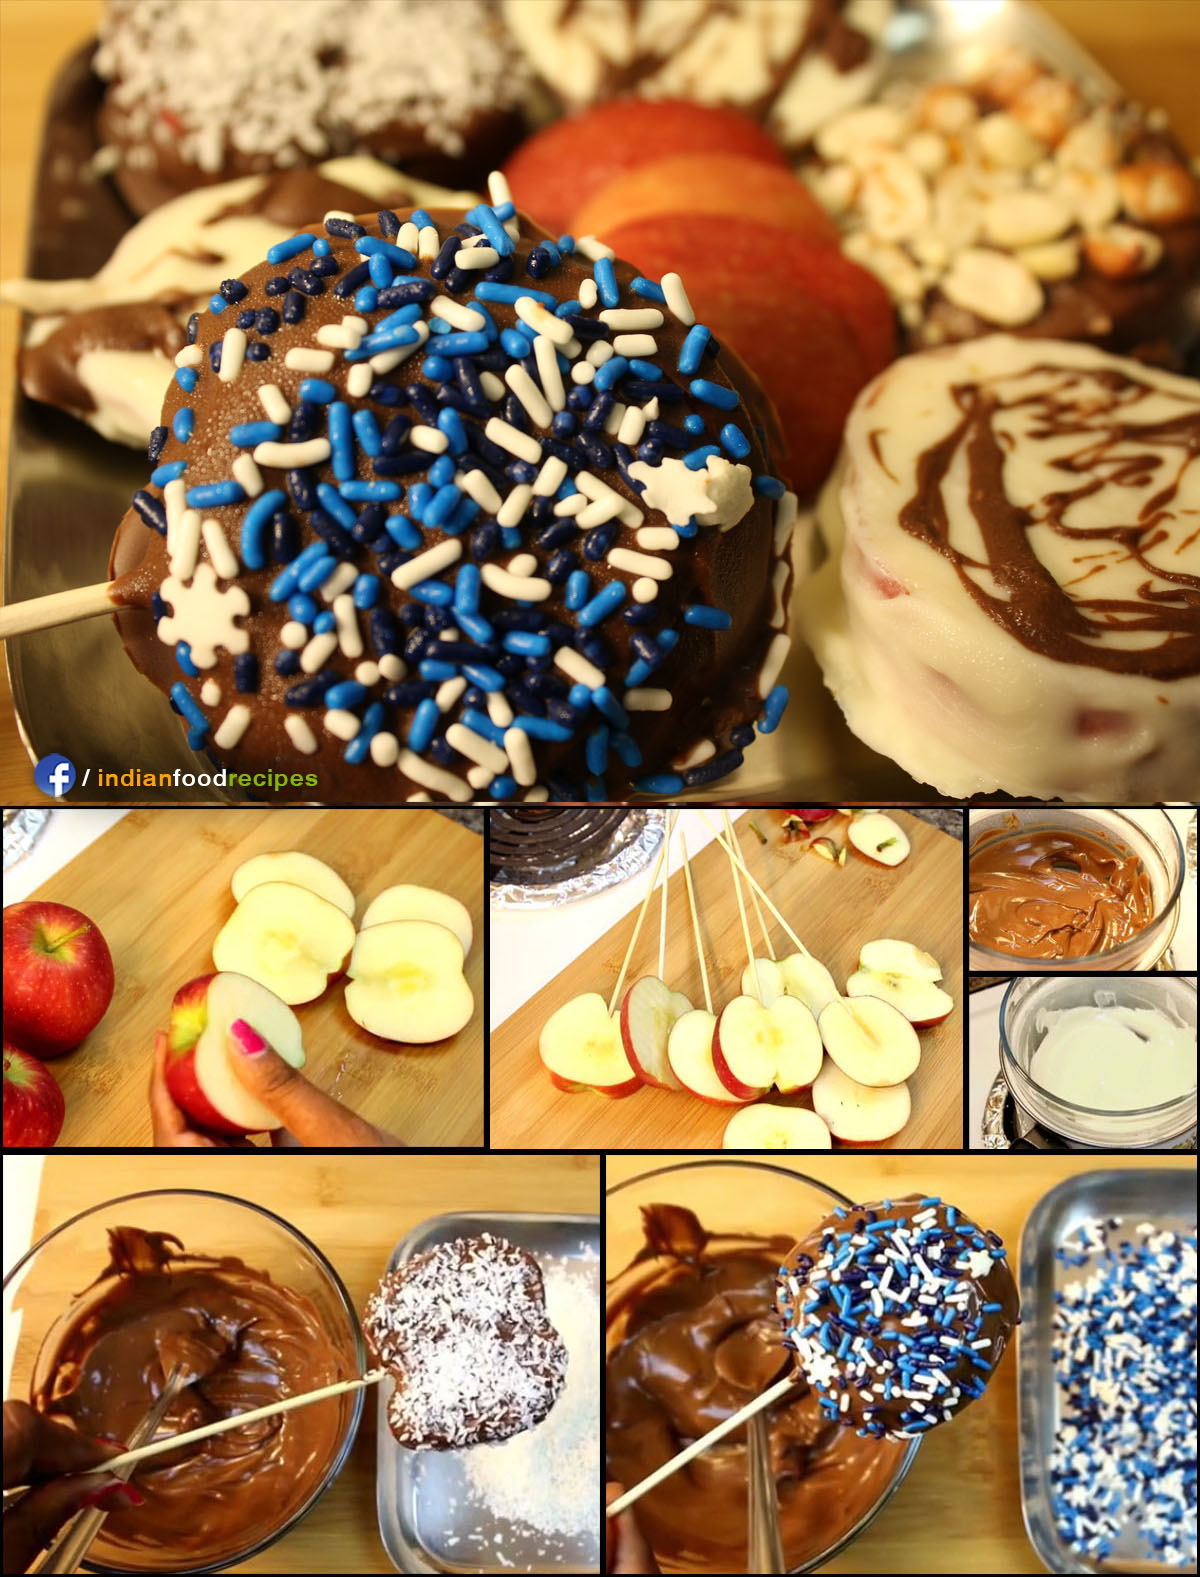 Chocolate Apple Candy recipe (step by step) pictures